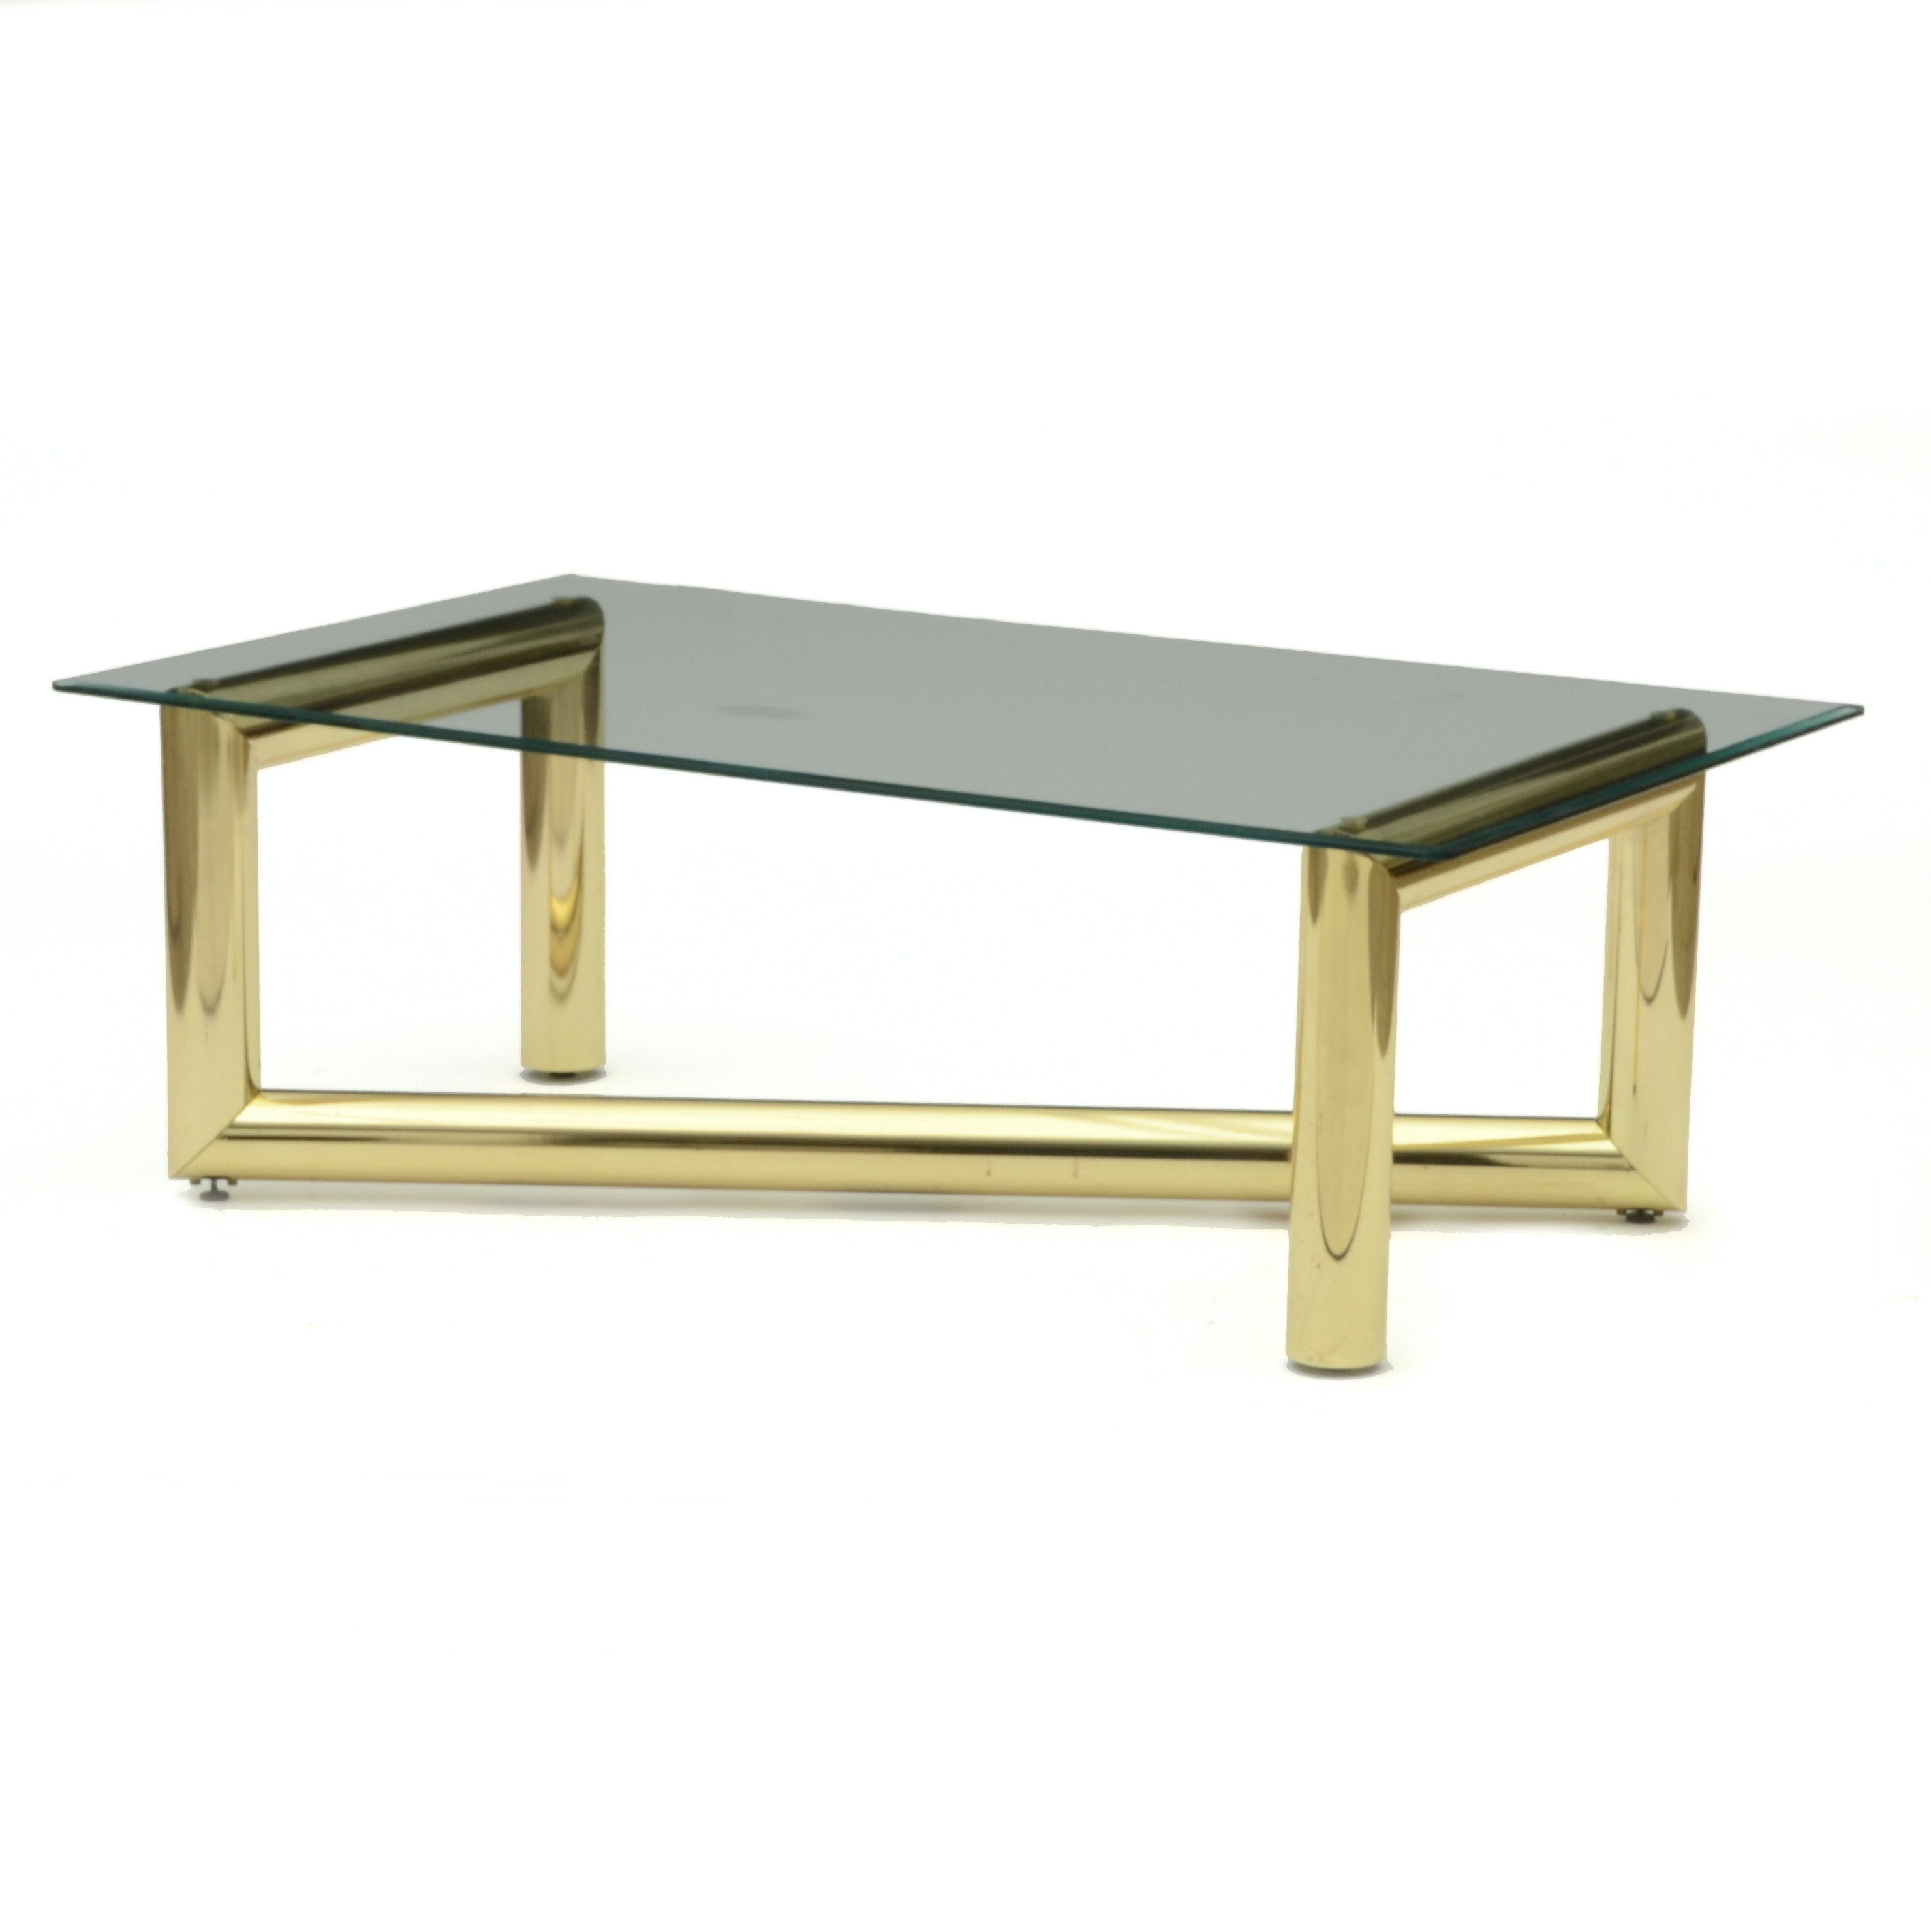 Elegant Karl Springer Brass And Glass Coffee Table ...